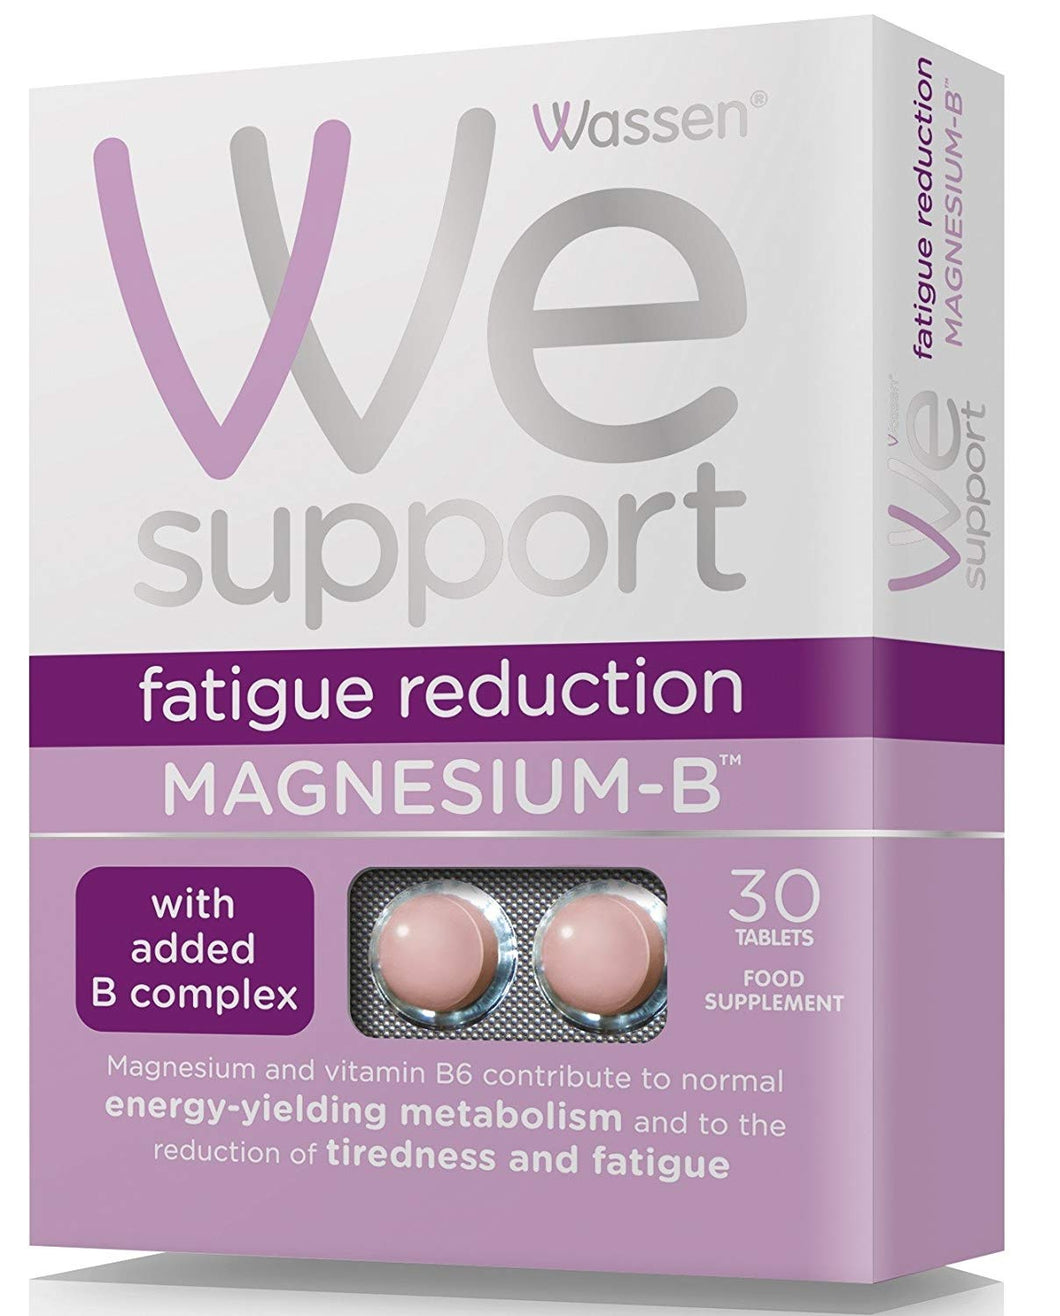 Wassen Magnesium-B 30 Tablets with added B Complex